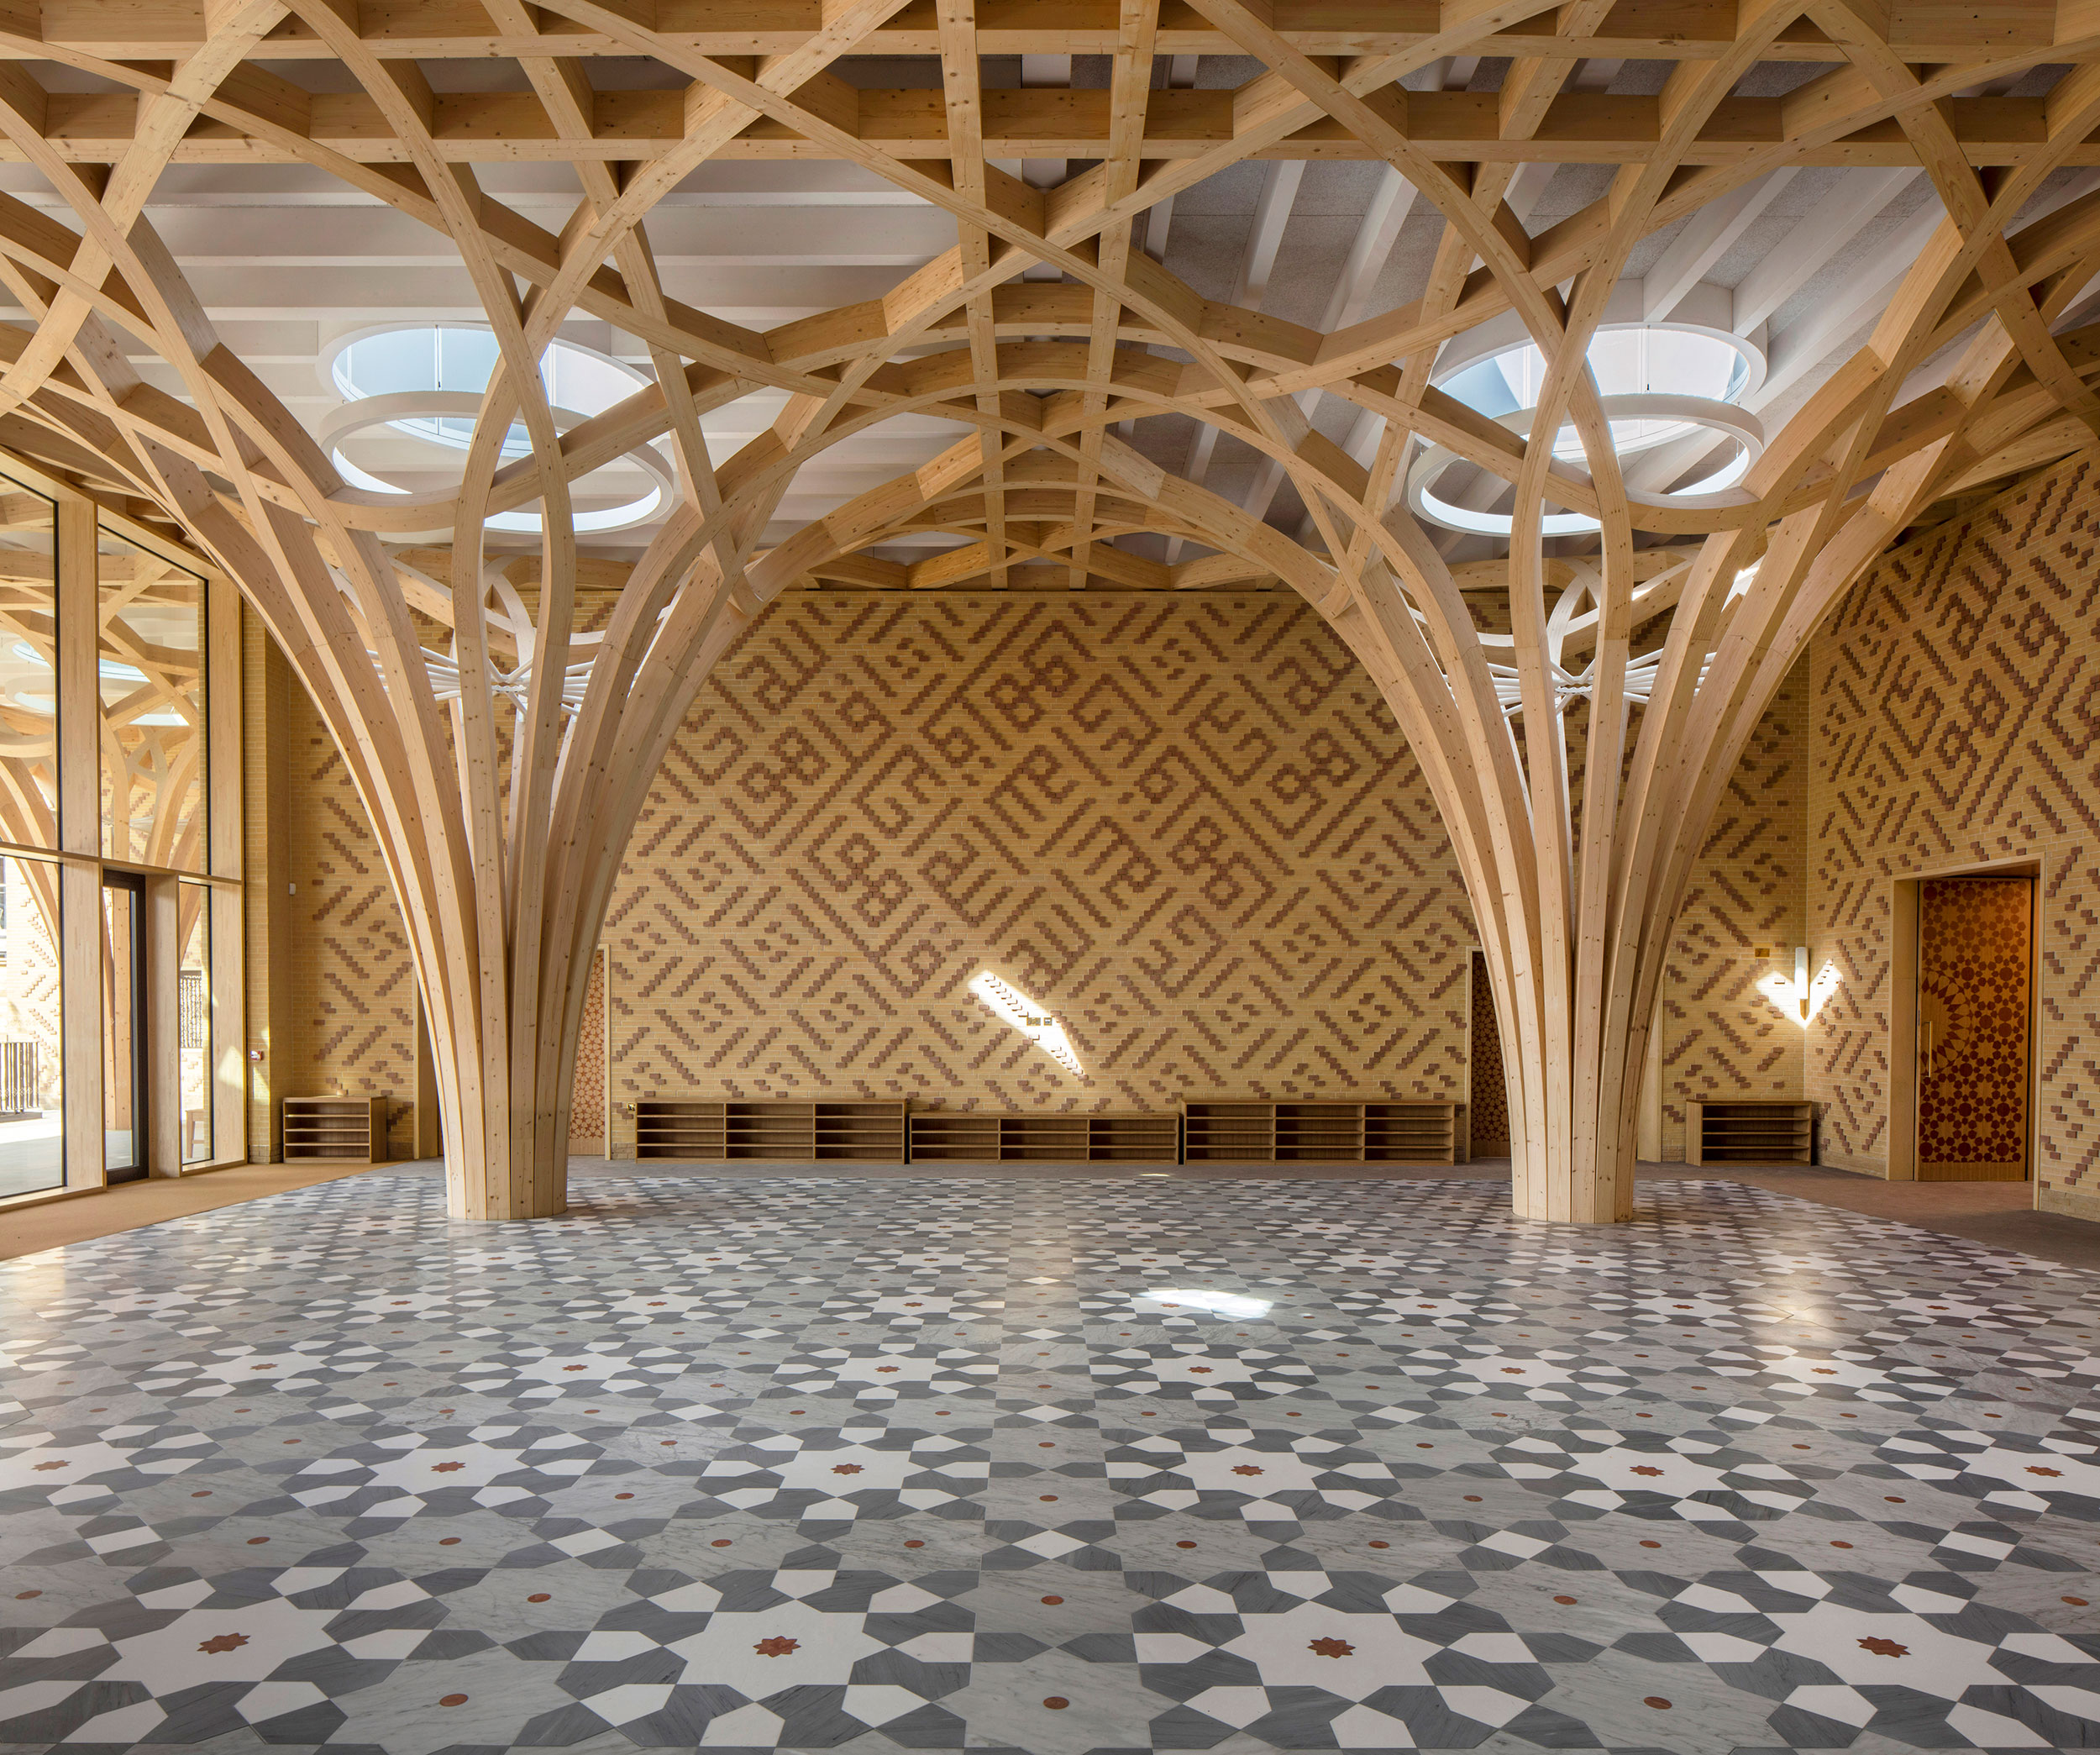 The new Cambridge Mosque, designed by Marks Barfield, is explicit in not following any school of Islam and actively trying to serve as a cultural bridge between communities. (Courtesy Morley von Sternberg)